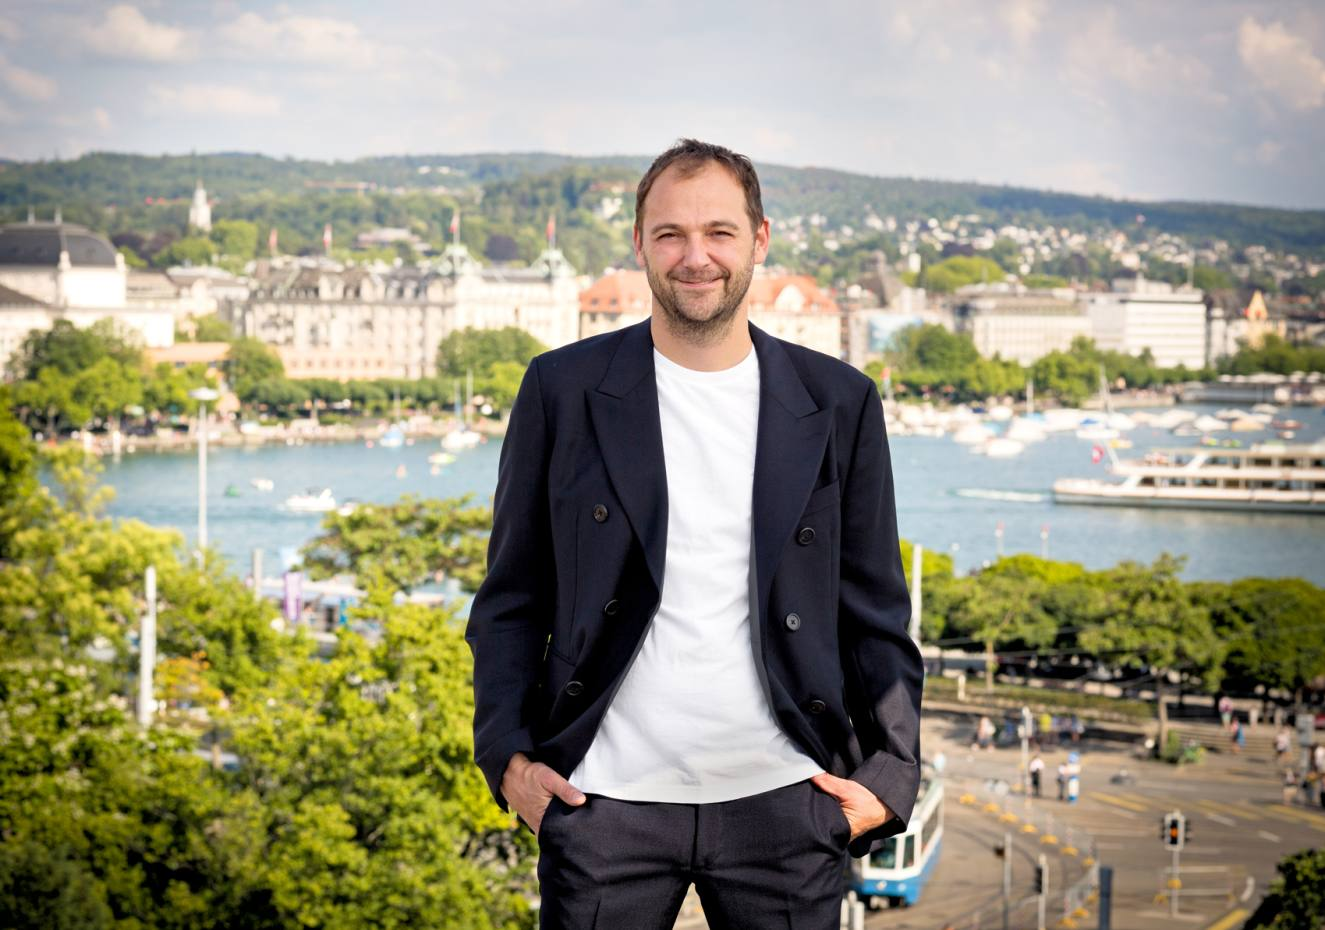 Daniel Humm with Lake Zürich in the background